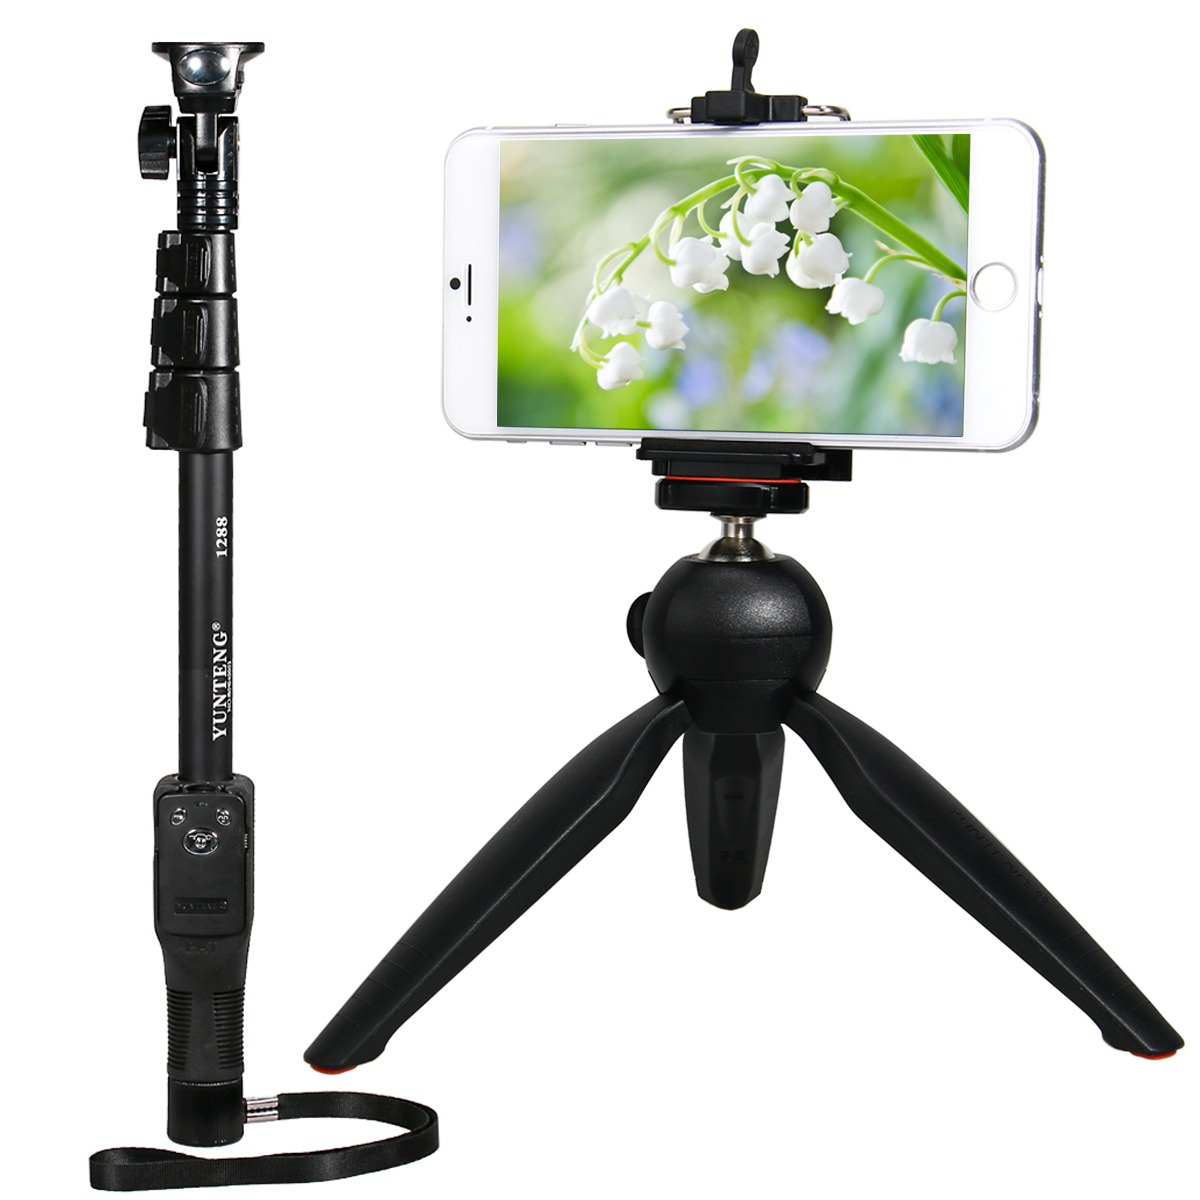 yunteng bluetooth selfie stick handheld monopod tripod for gopro 3 3 4 tv09 ebay. Black Bedroom Furniture Sets. Home Design Ideas